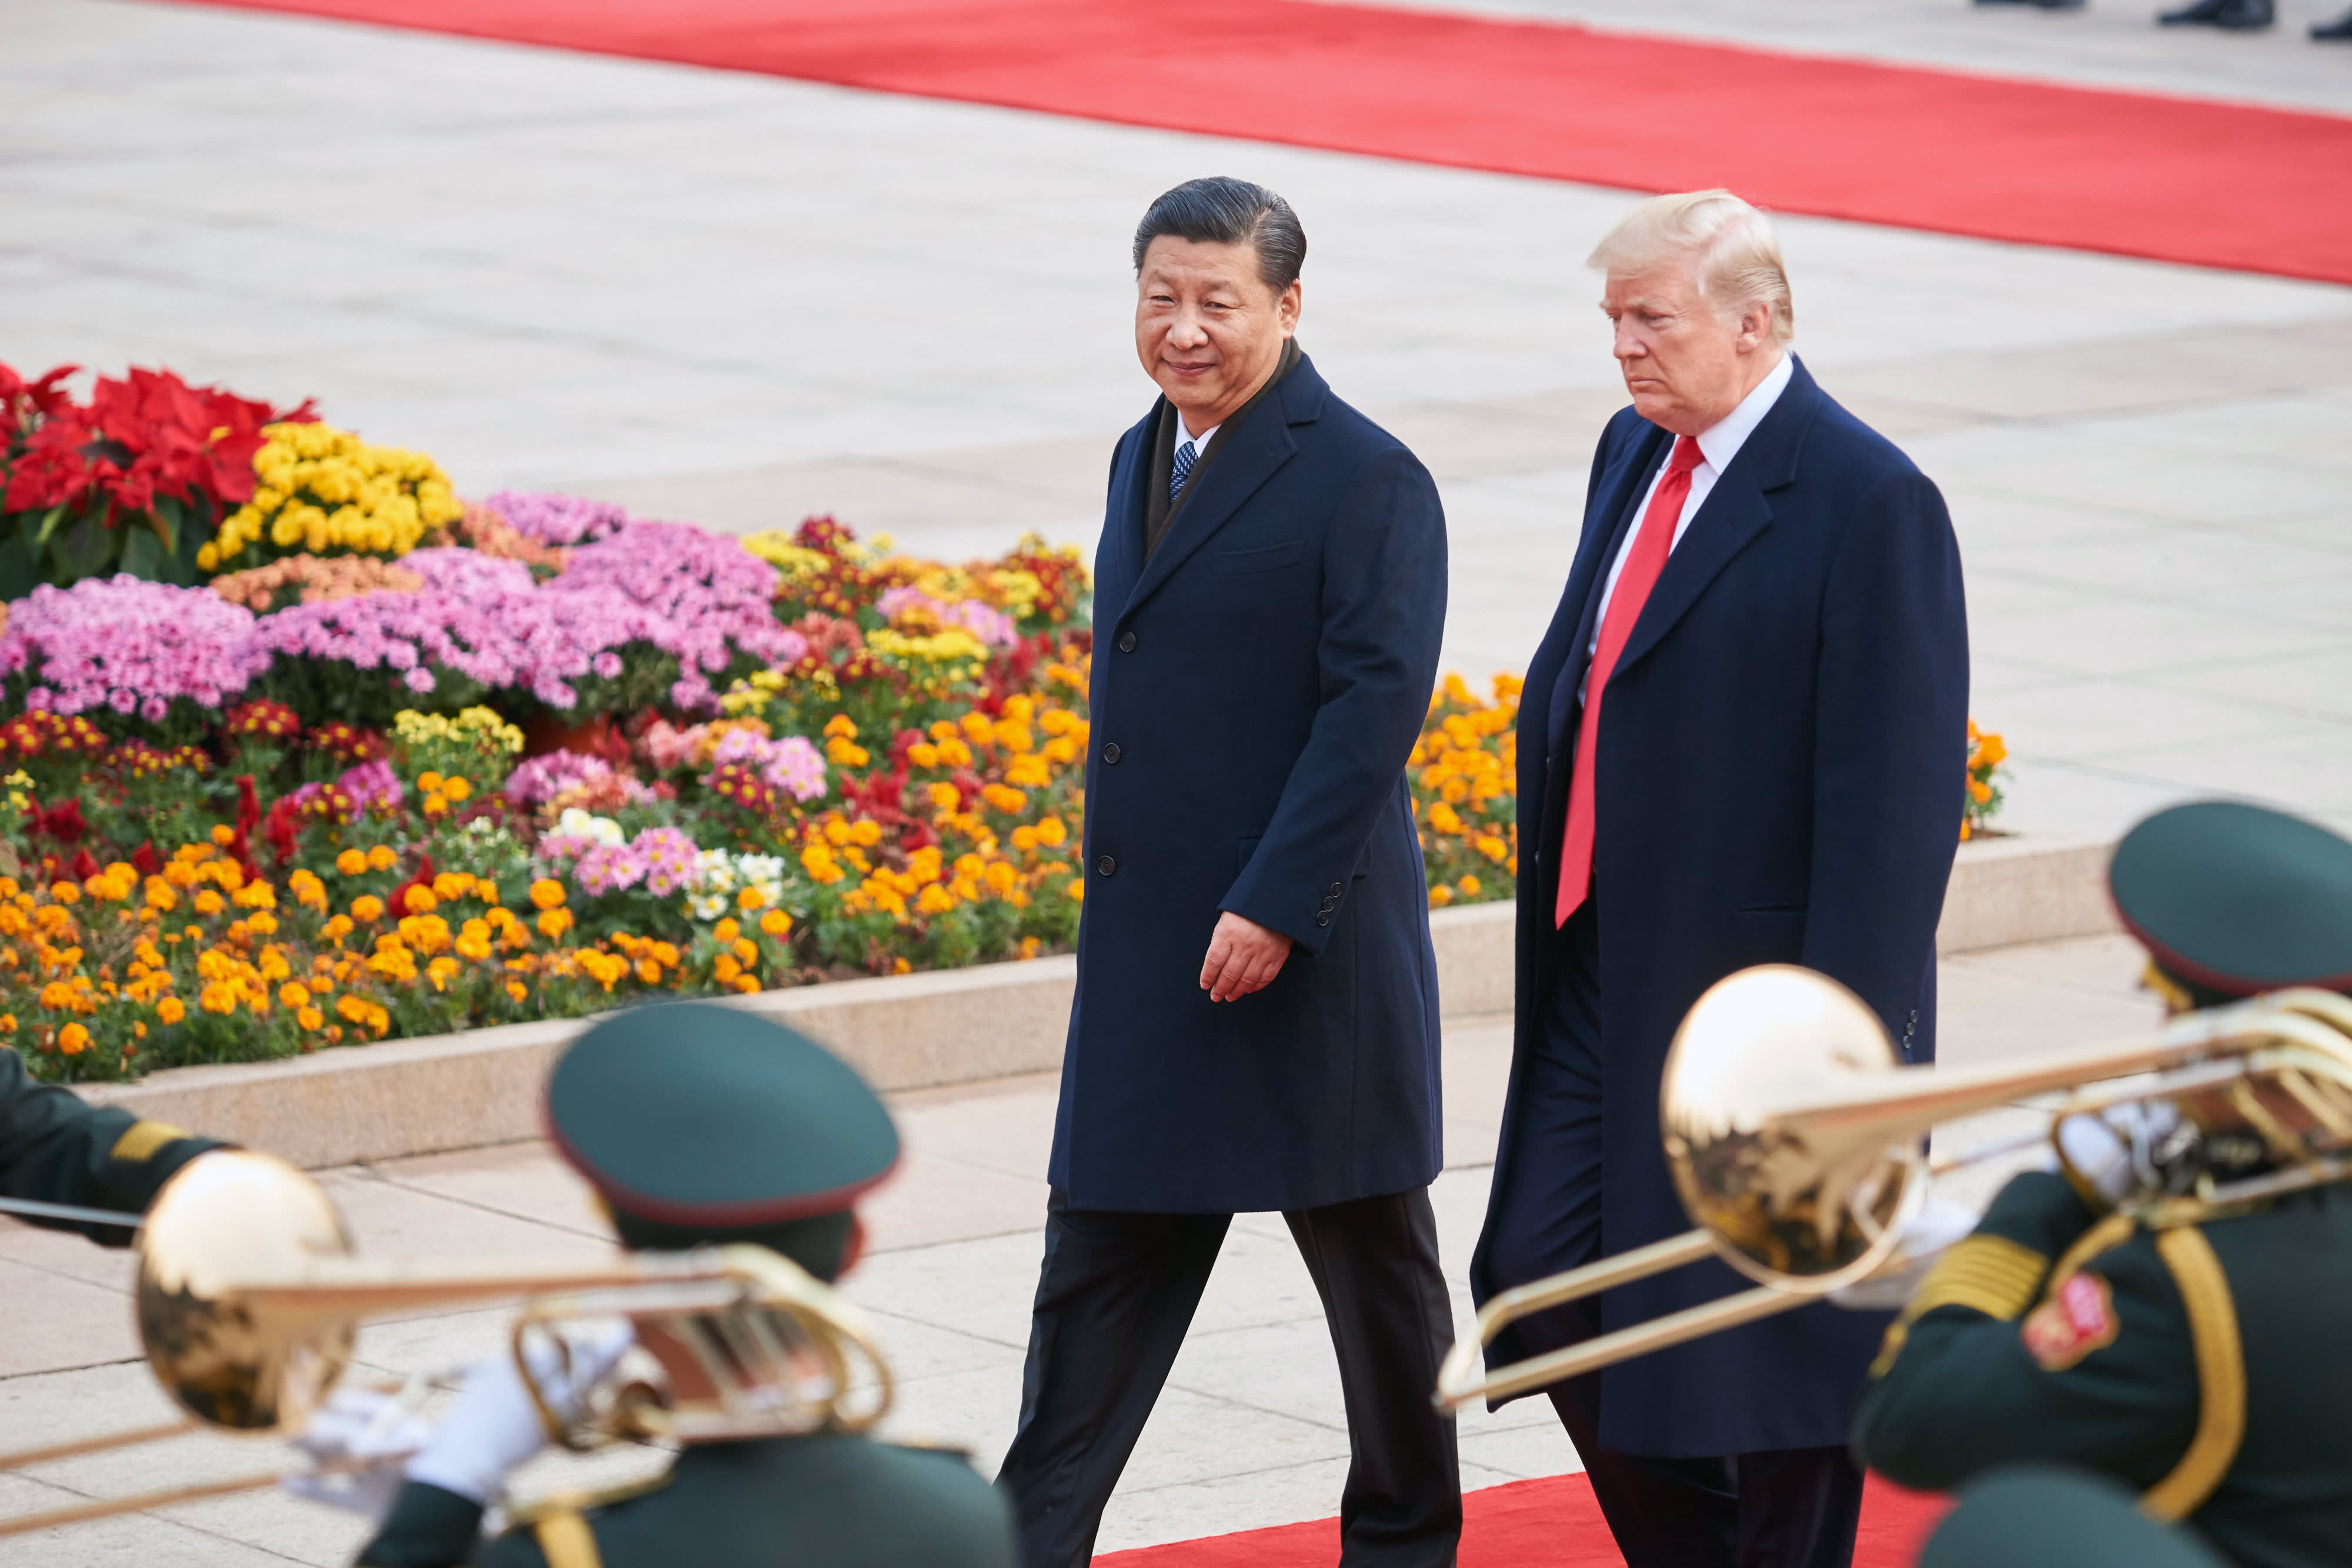 China accuses US of 'sinister intentions' after Trump signs bills supporting Hong Kong protesters